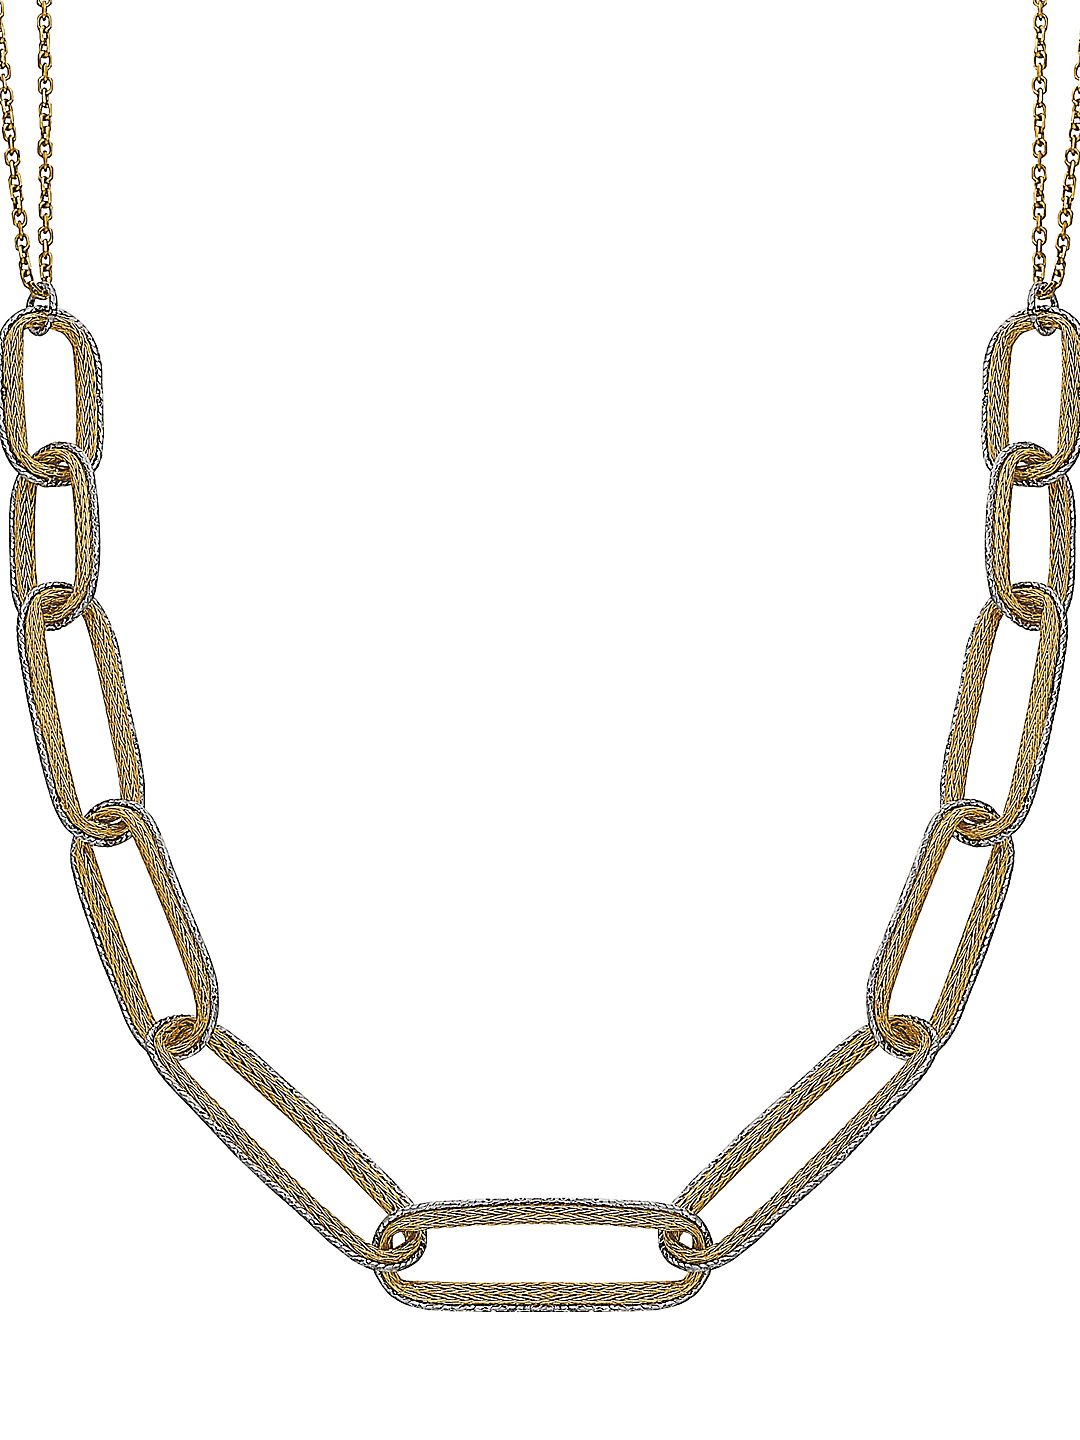 14K Yellow & White Gold Wheat Chain Link Necklace